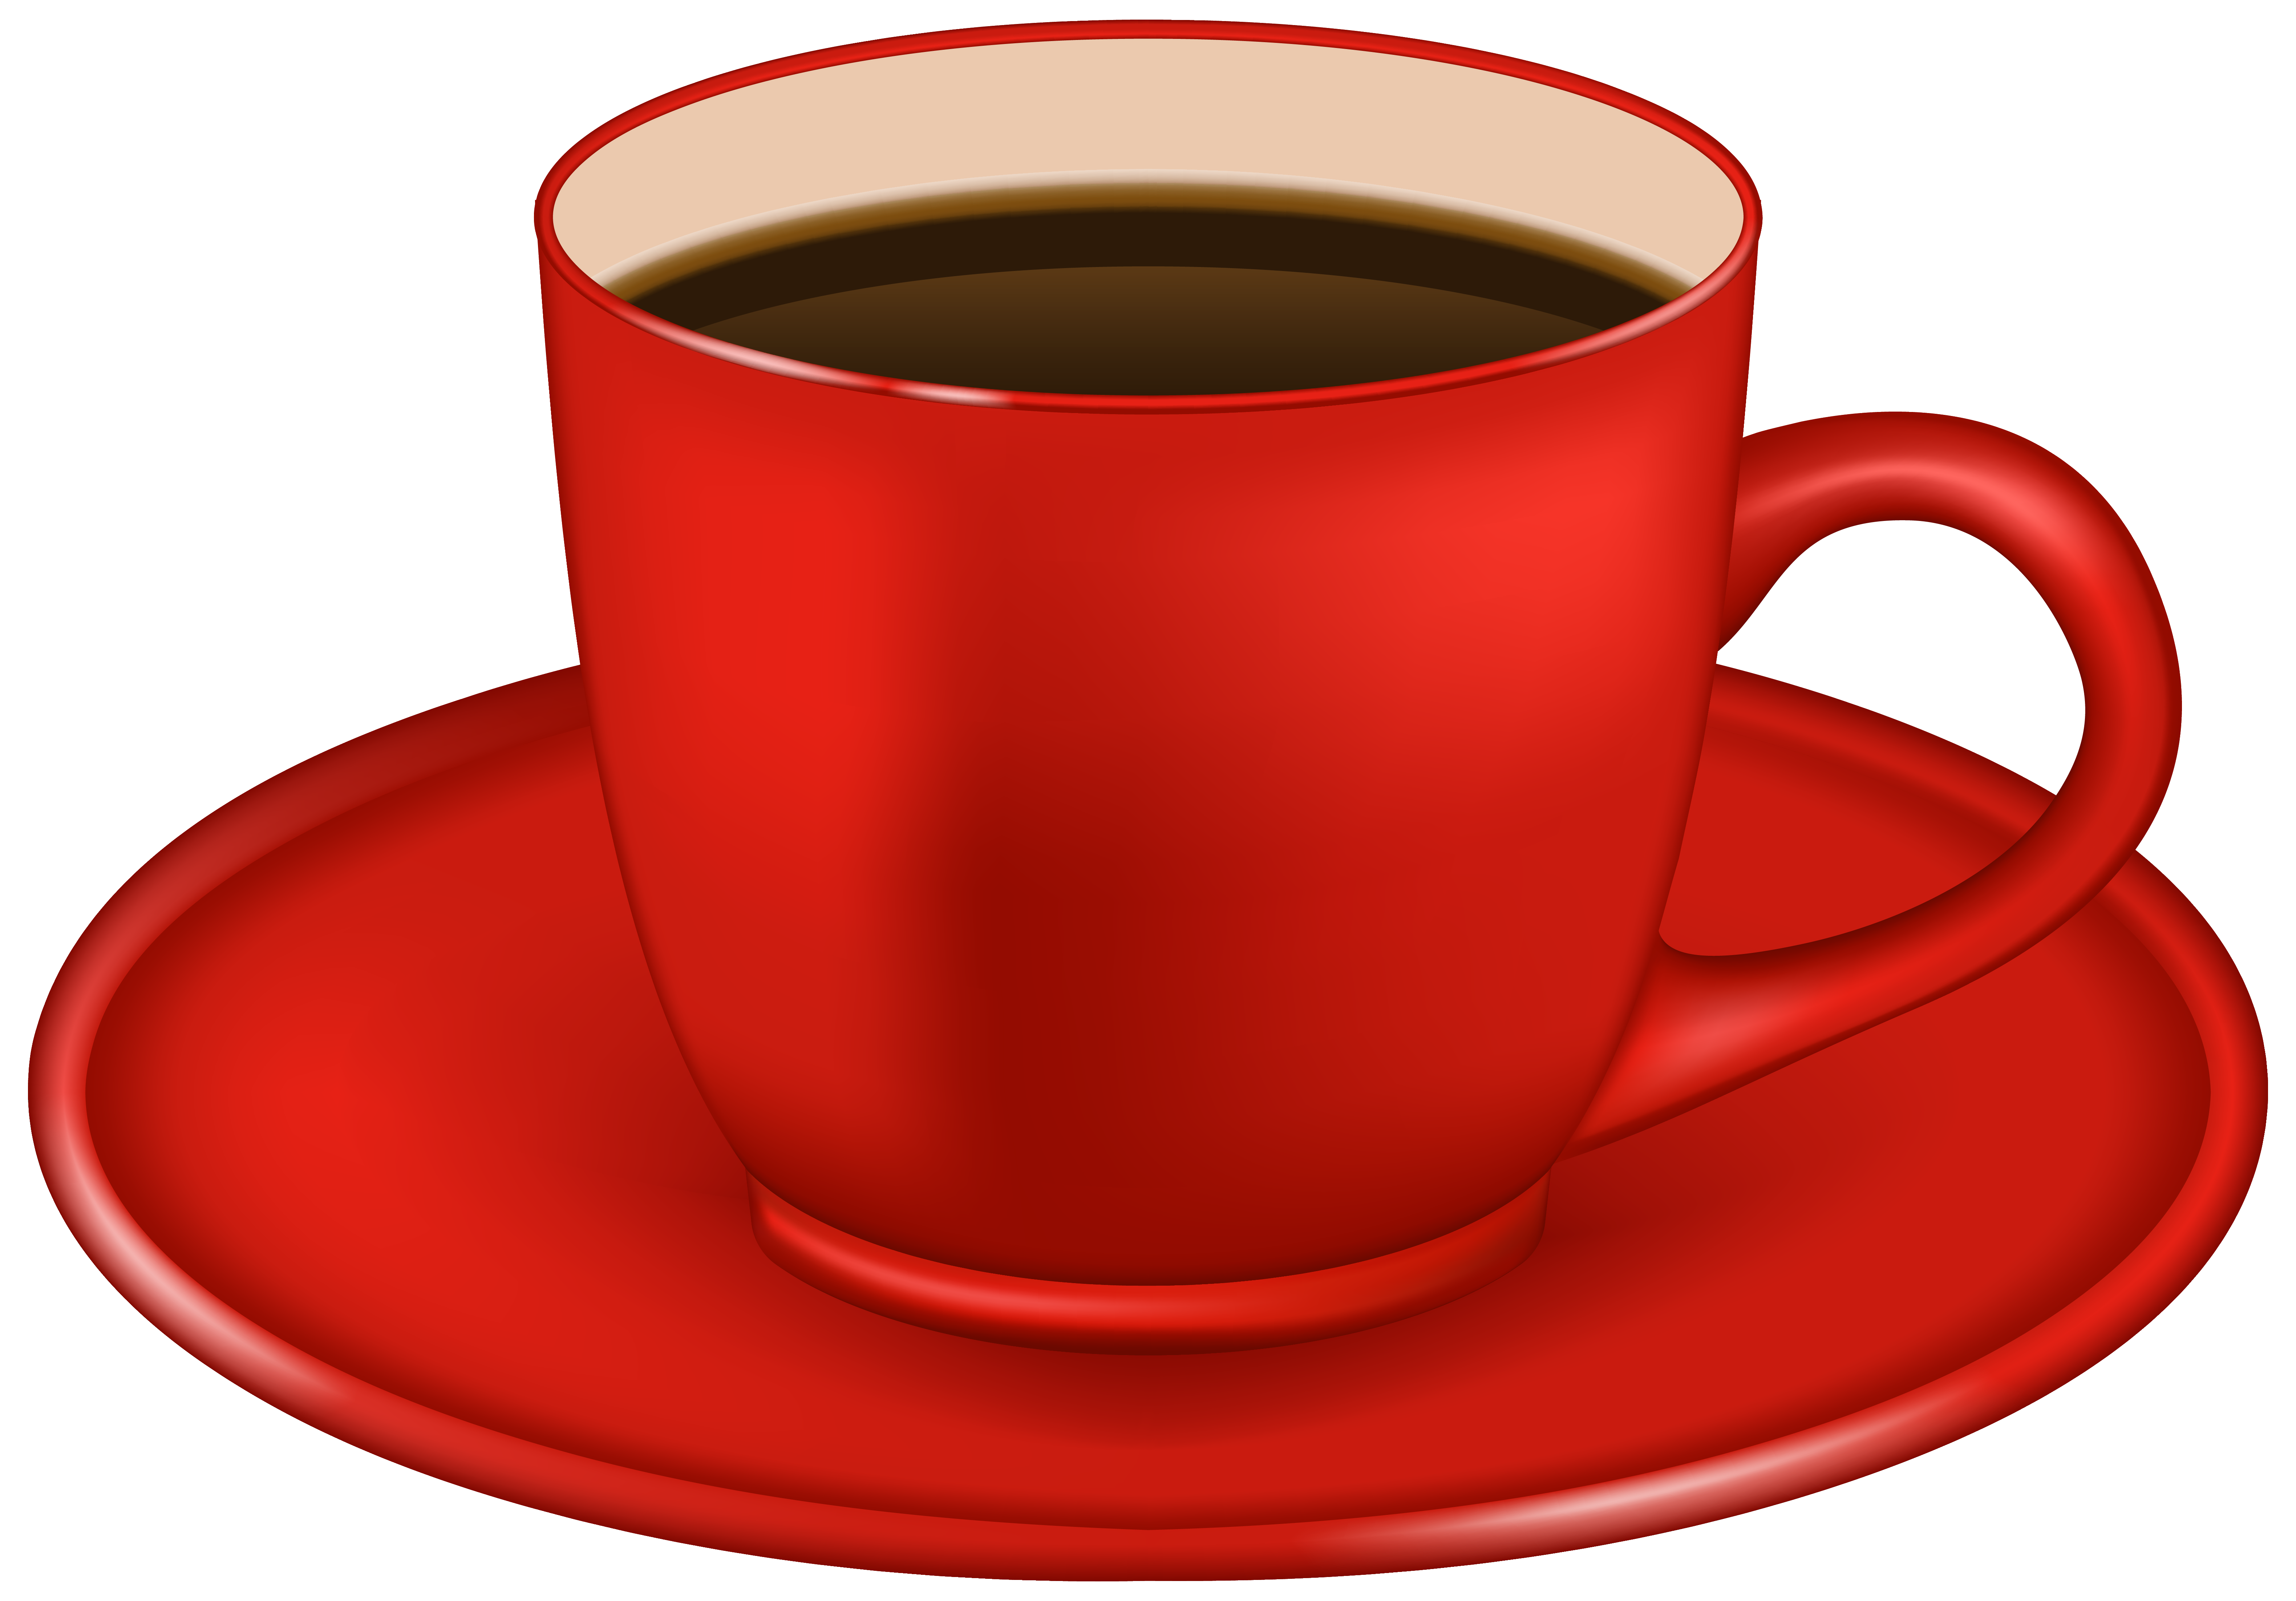 Clipart coffee mocha. Red cup png image